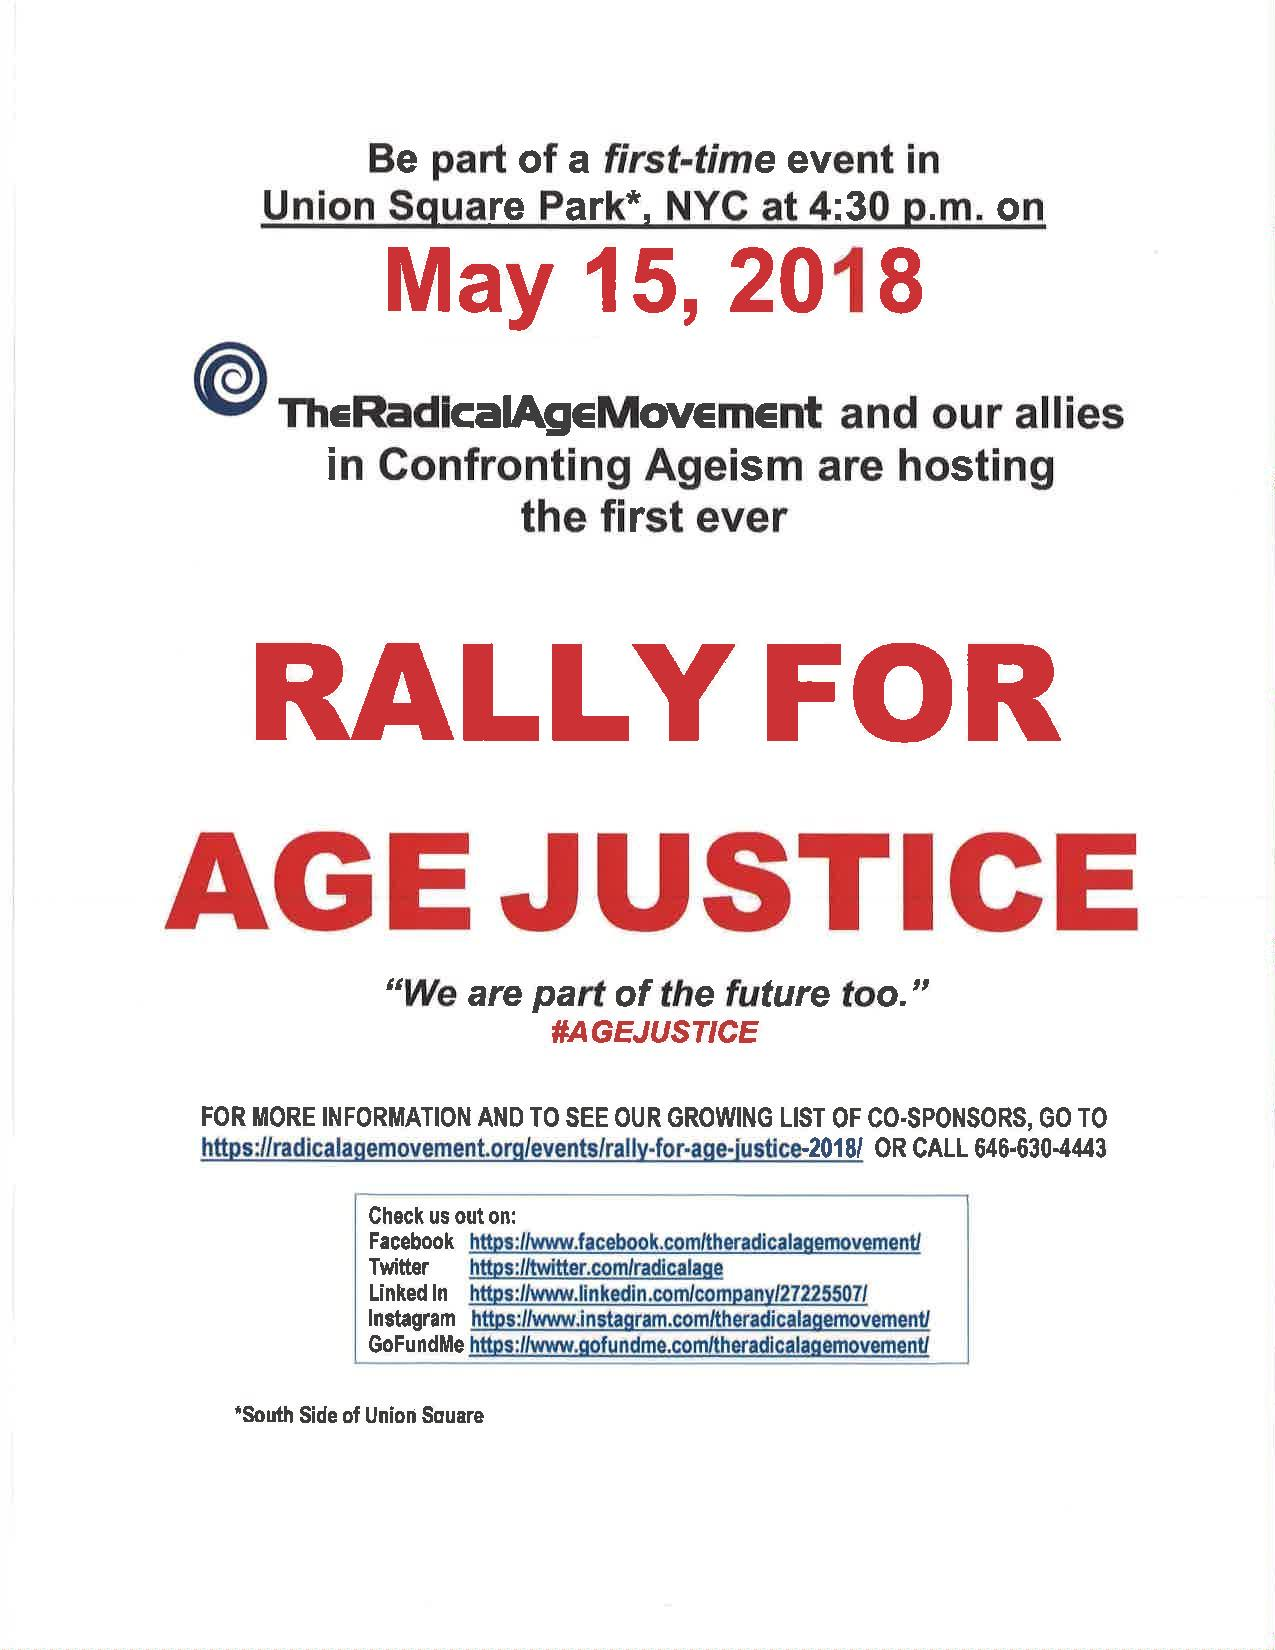 Rally for Age Justice Flyer-page-001.jpg